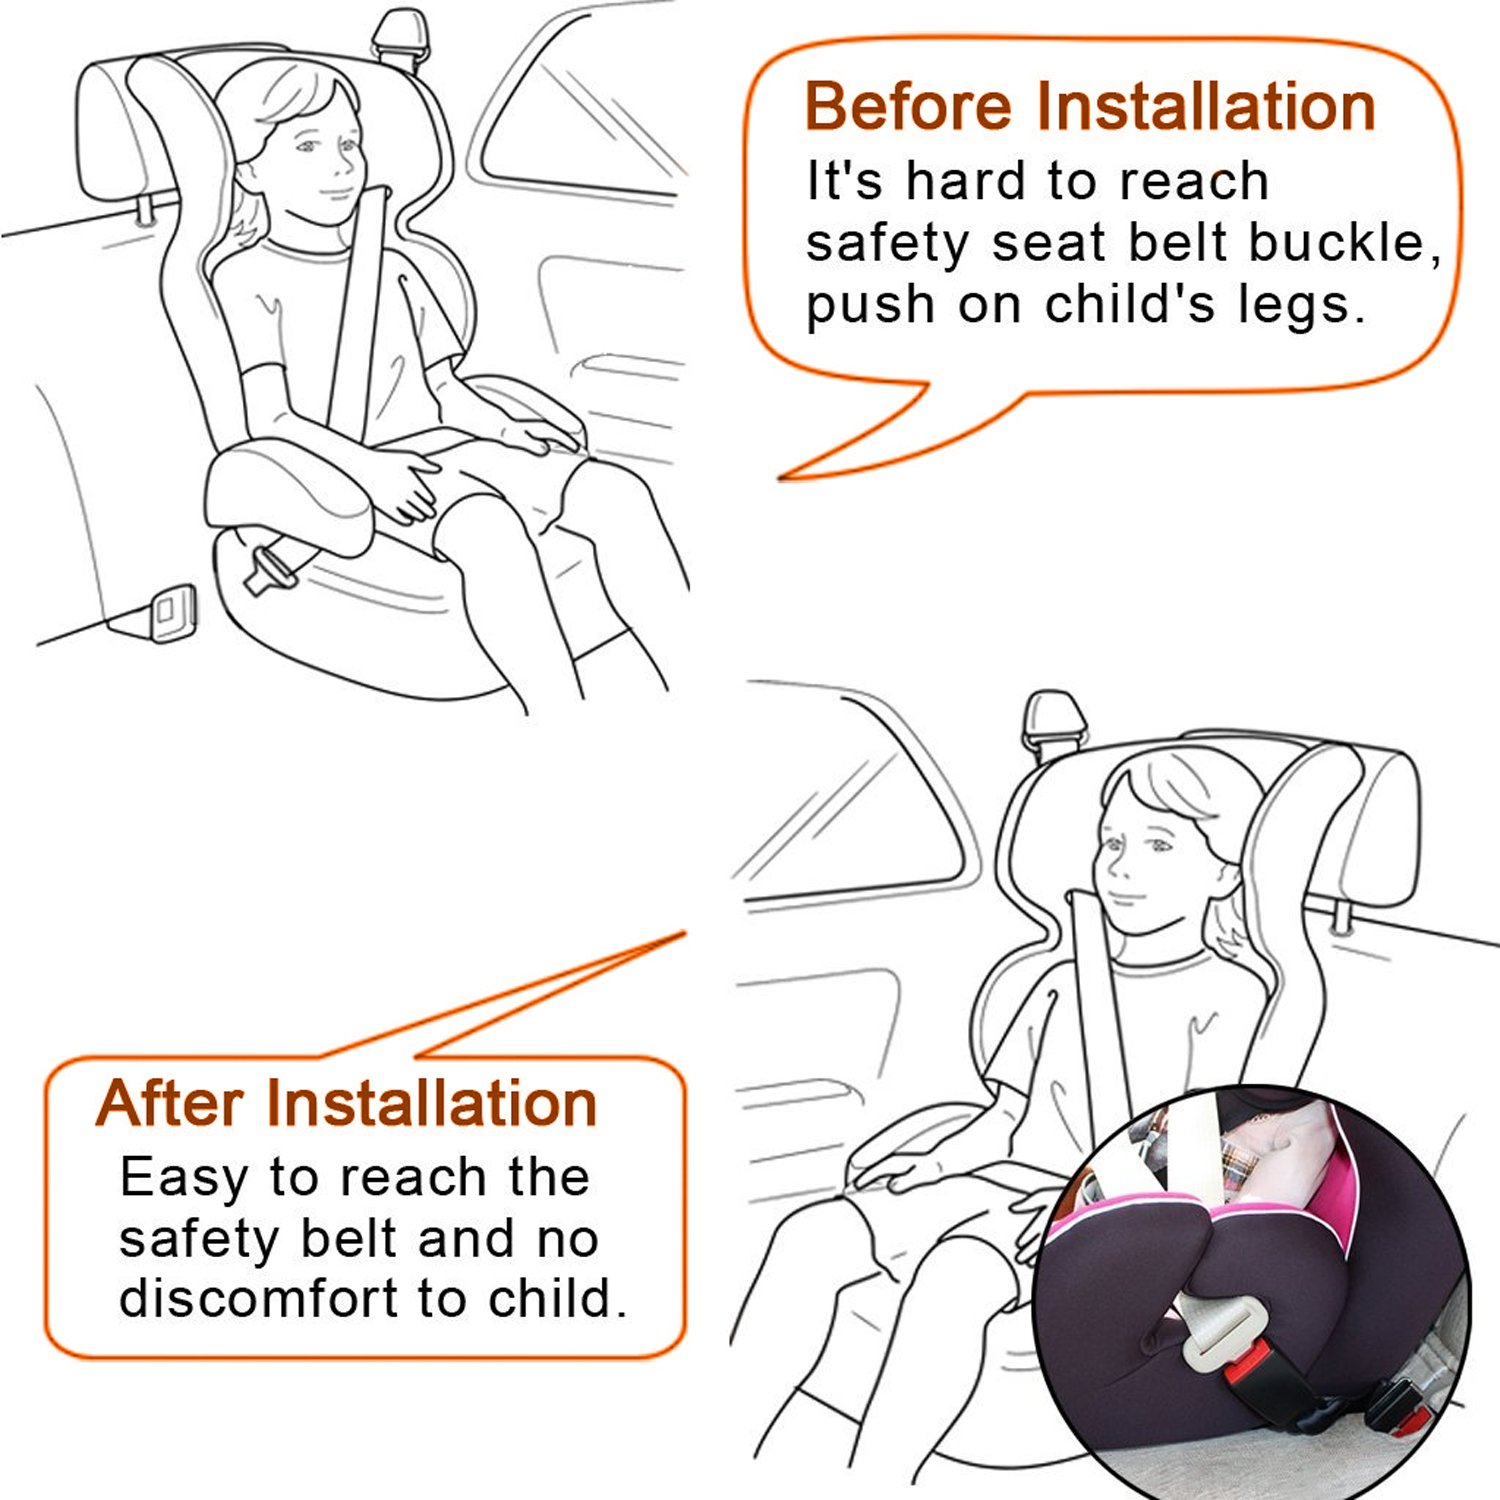 Buick Regal: Safety Belt Use During Pregnancy